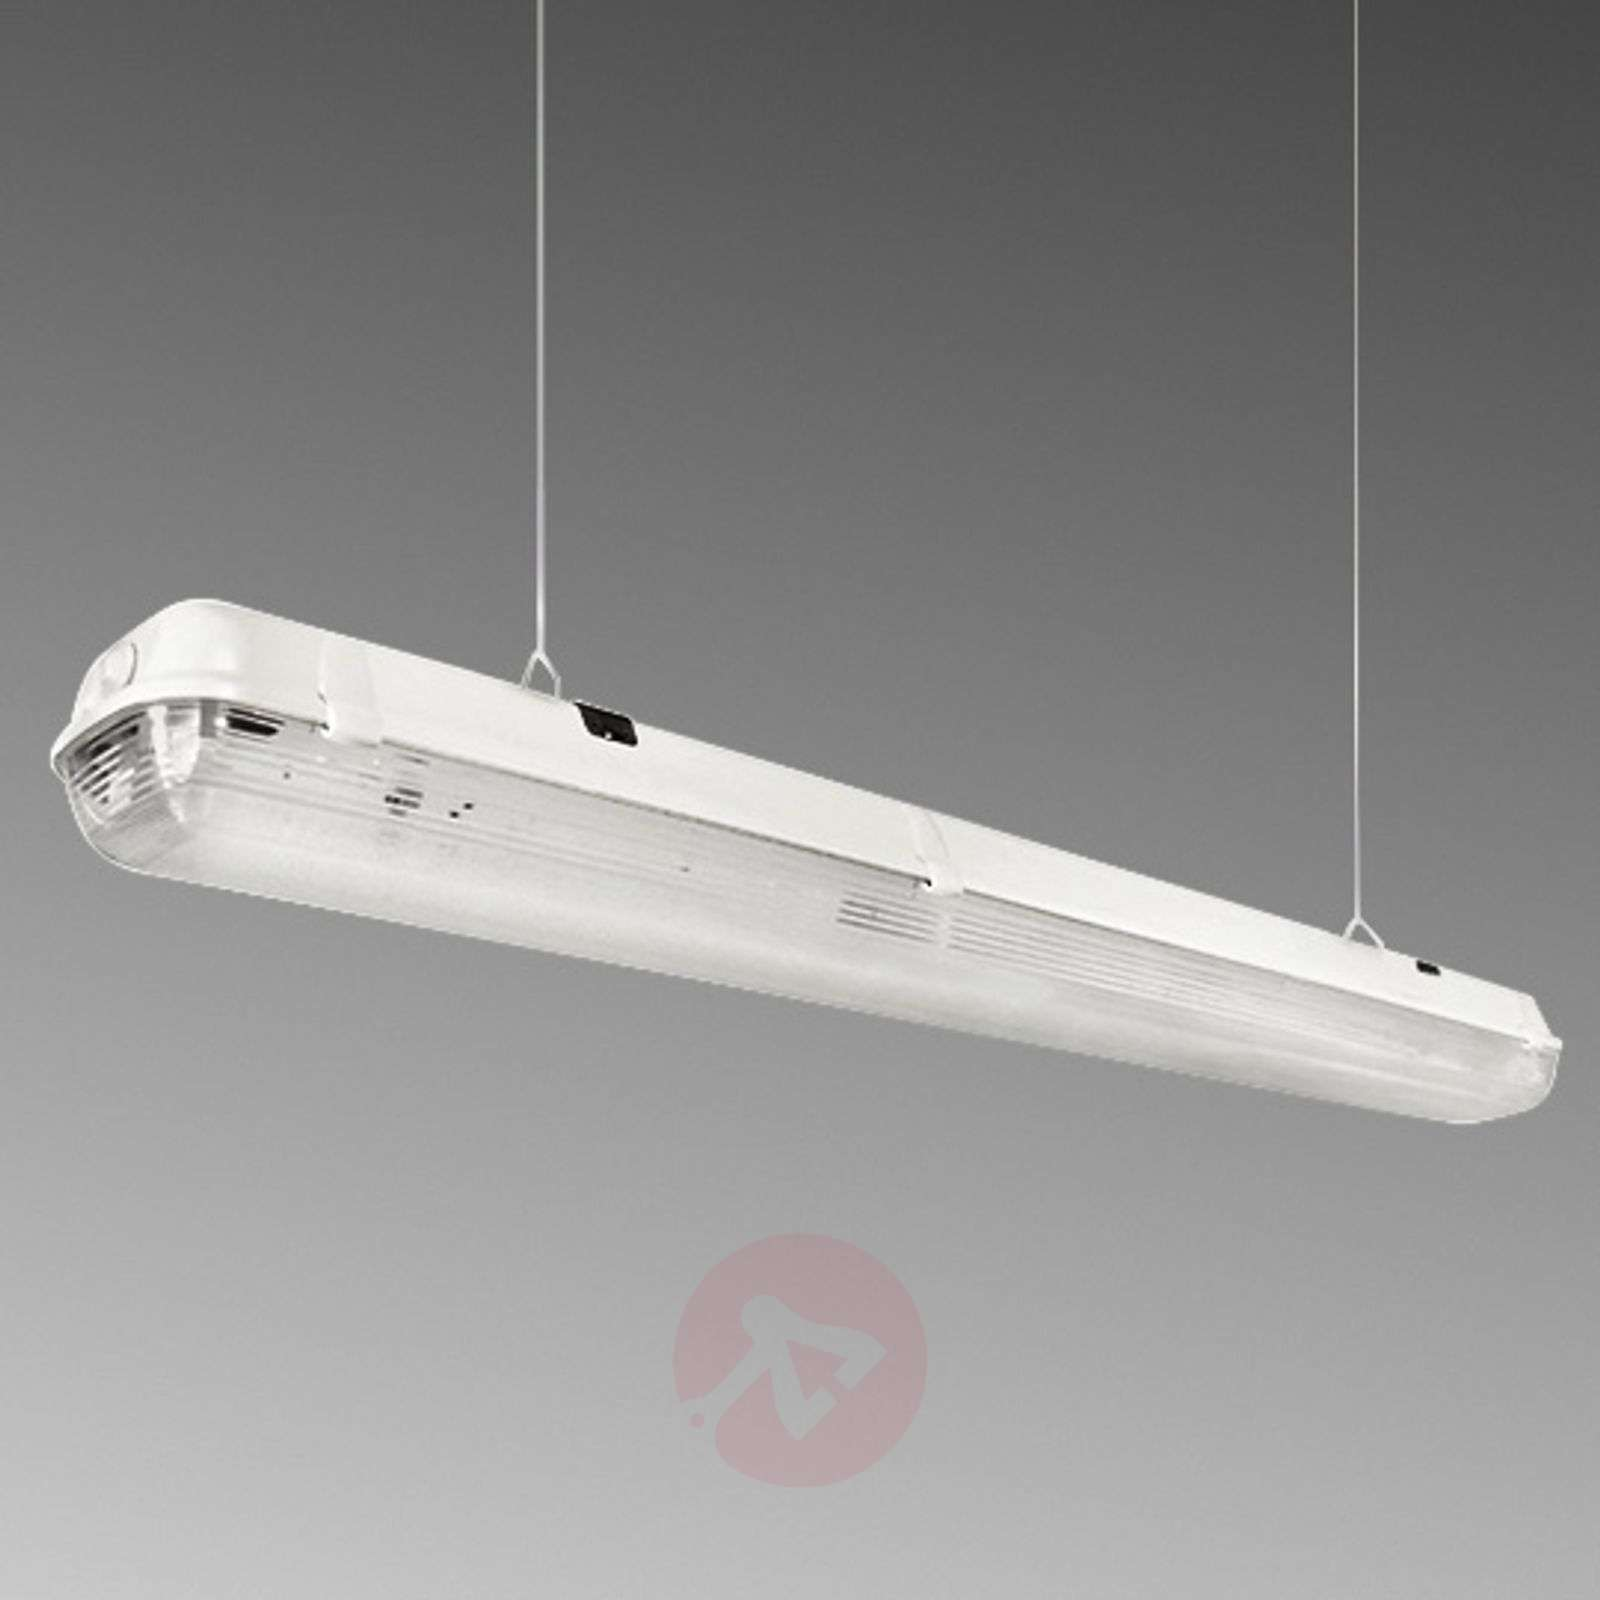 Lámpara estanca LED salas húmedas industr. 95 W-3002159-01